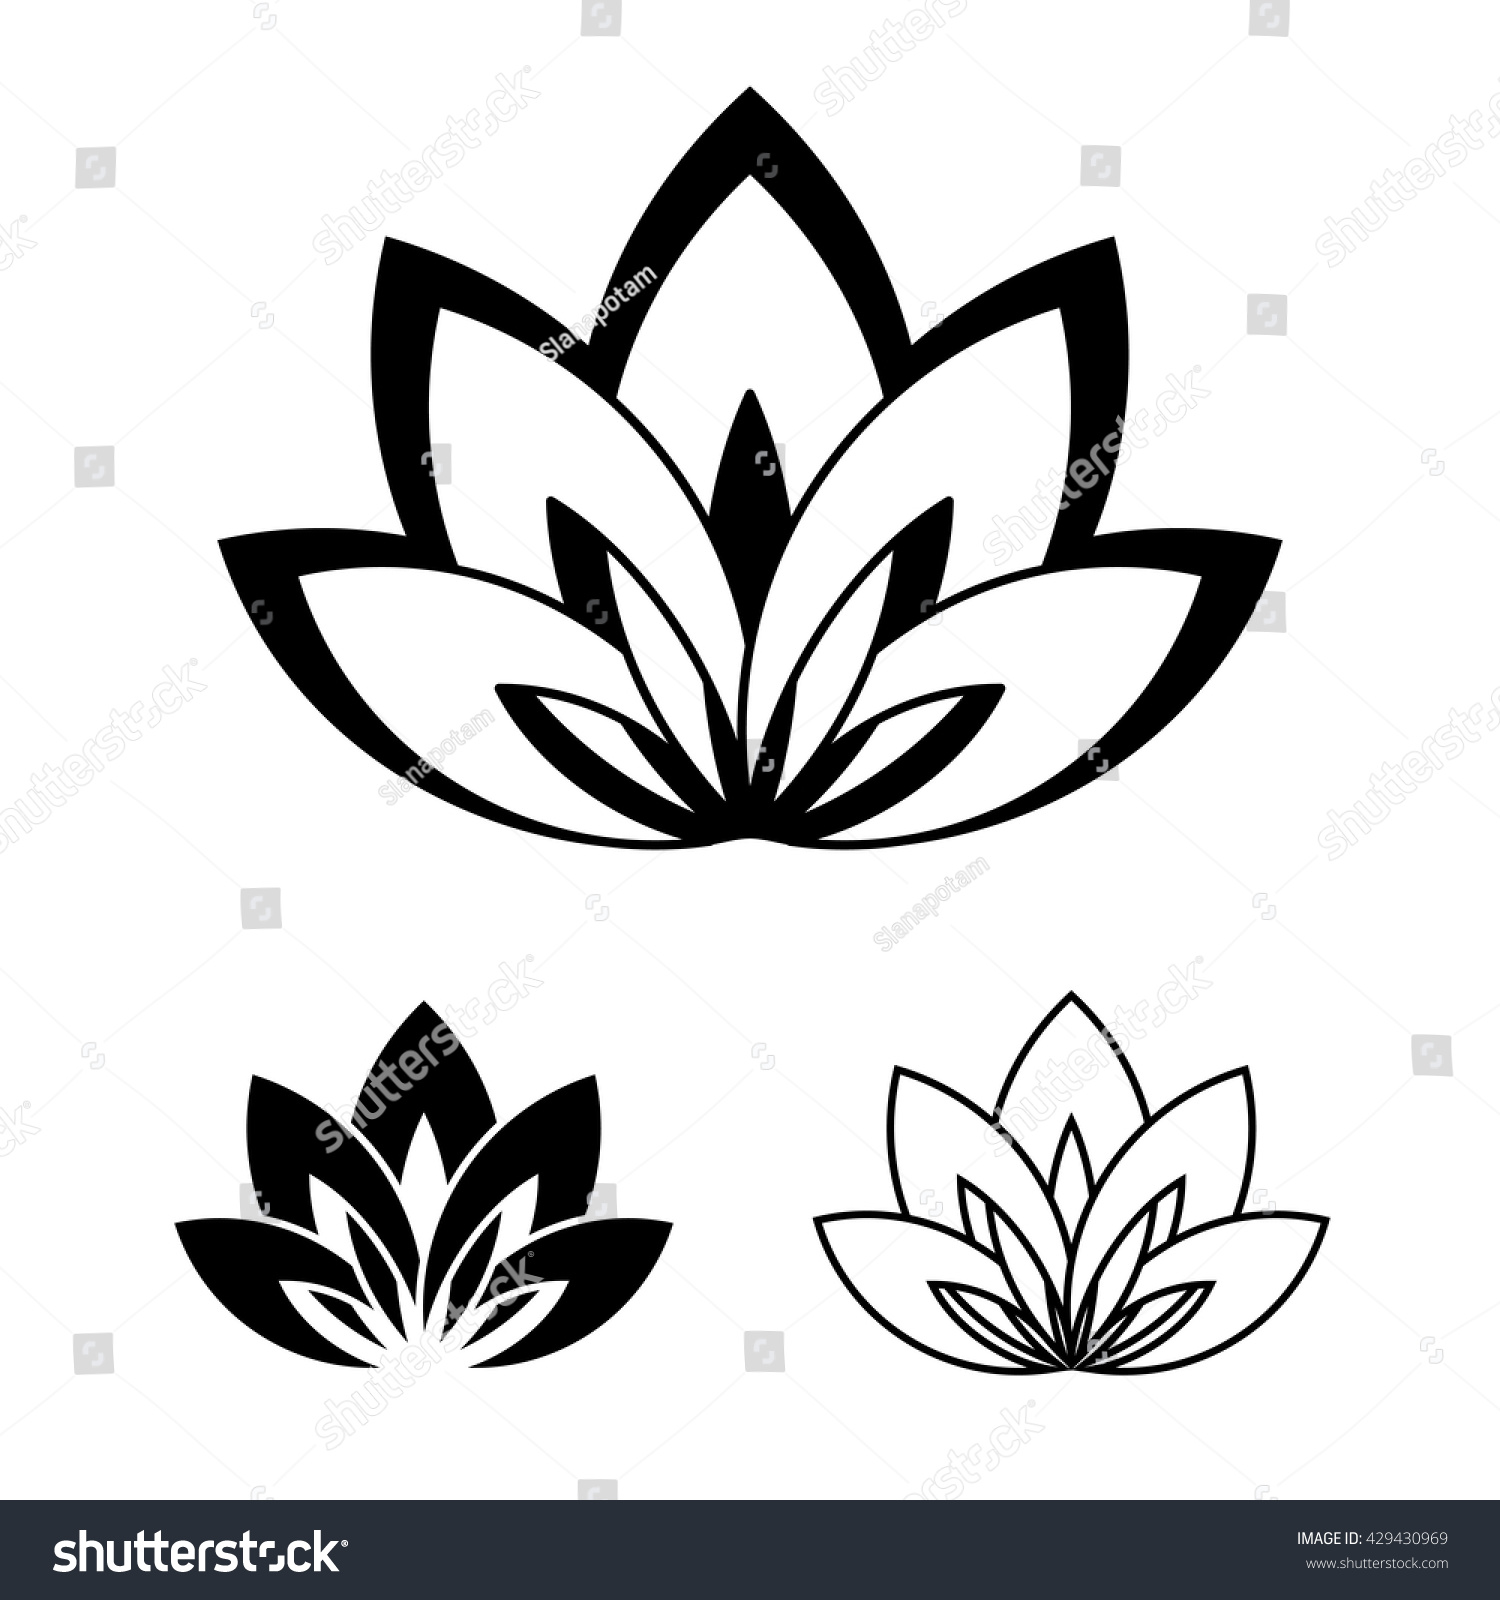 Yoga pattern background seamless pattern with five petals lotus flower - Five Petals Lotus Flower As Symbol Of Yoga Vector Illustration For Yoga Event